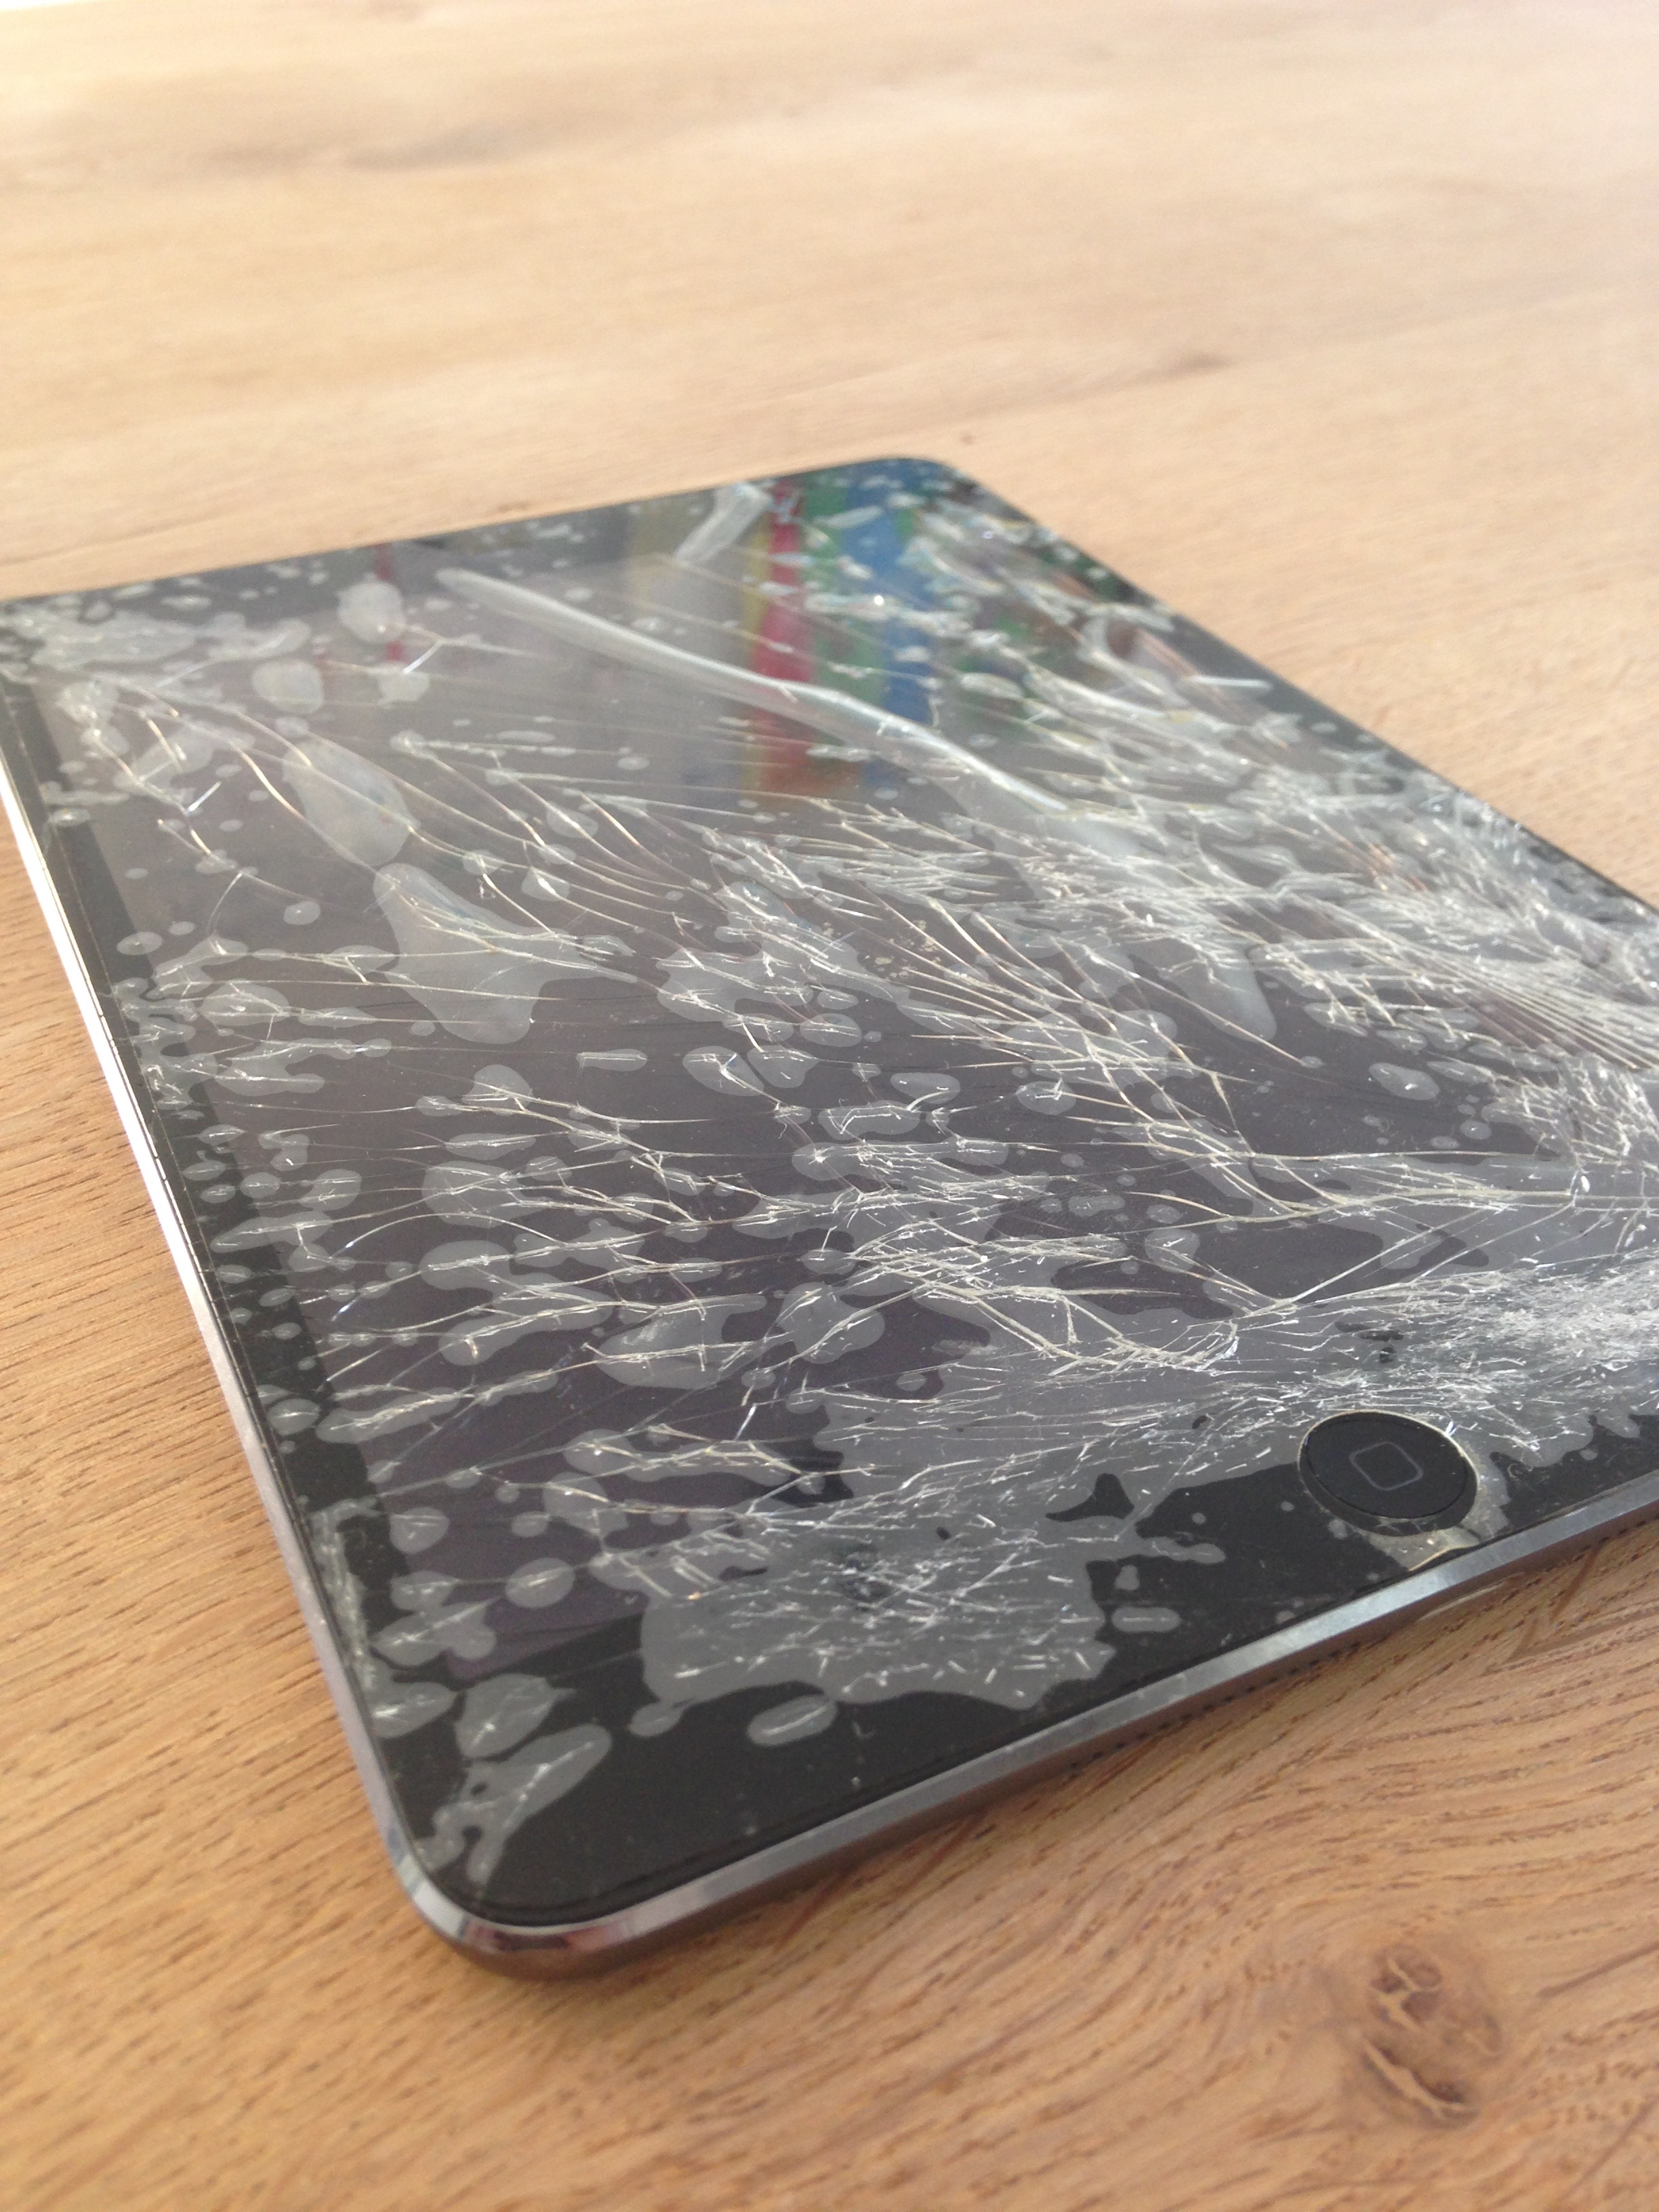 ipad mini screen needs a little tender loving care